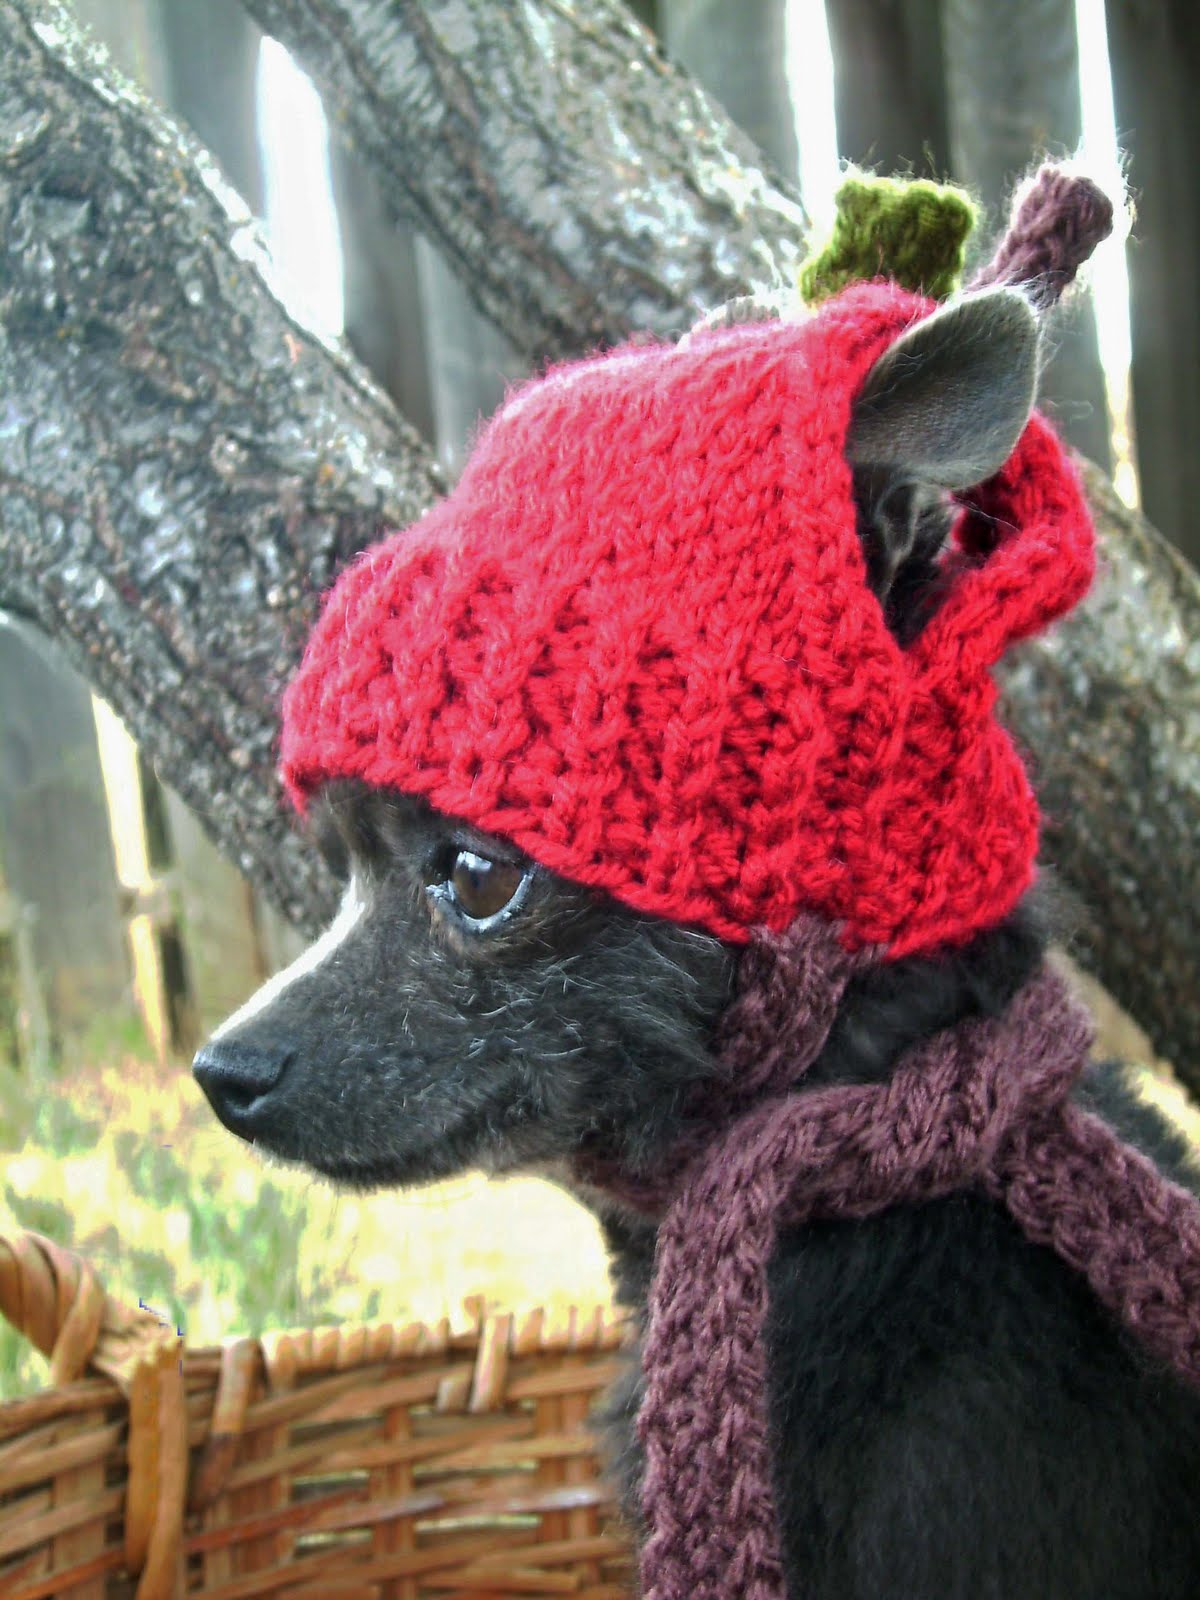 Puppy Dog Hat Knitting Pattern : Dog Gone it: Anywear hand knits for dogs